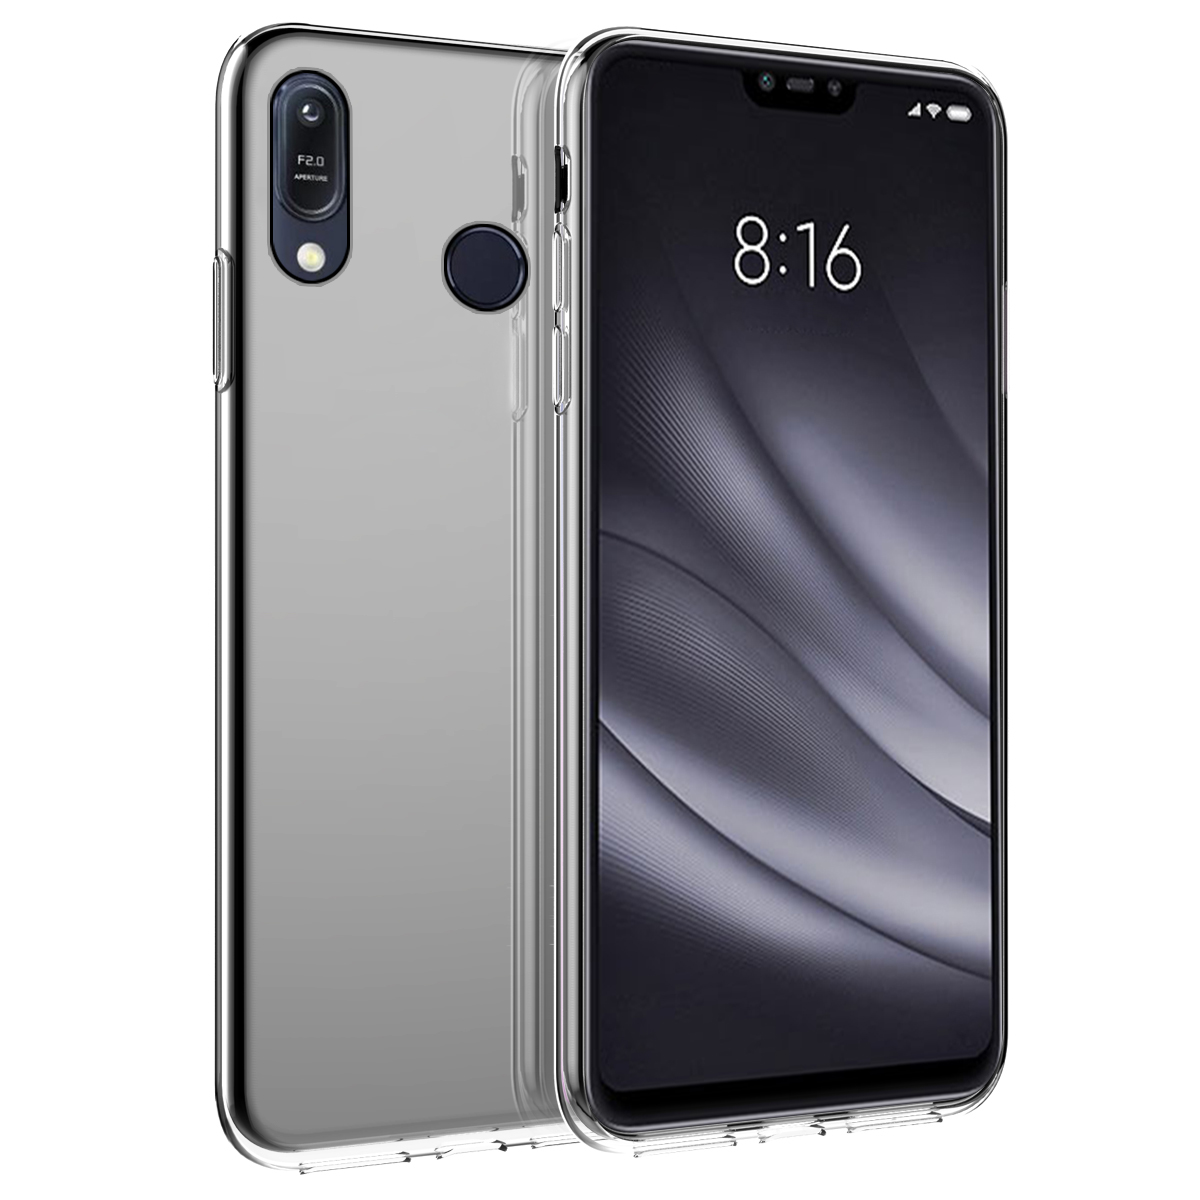 For Asus Zenfone Max Pro M2 ZB631KL Case Silicone Transparent Soft TPU Back Cover For Asus Zenfone Max M2 ZB633KL ASUS ZB631KL